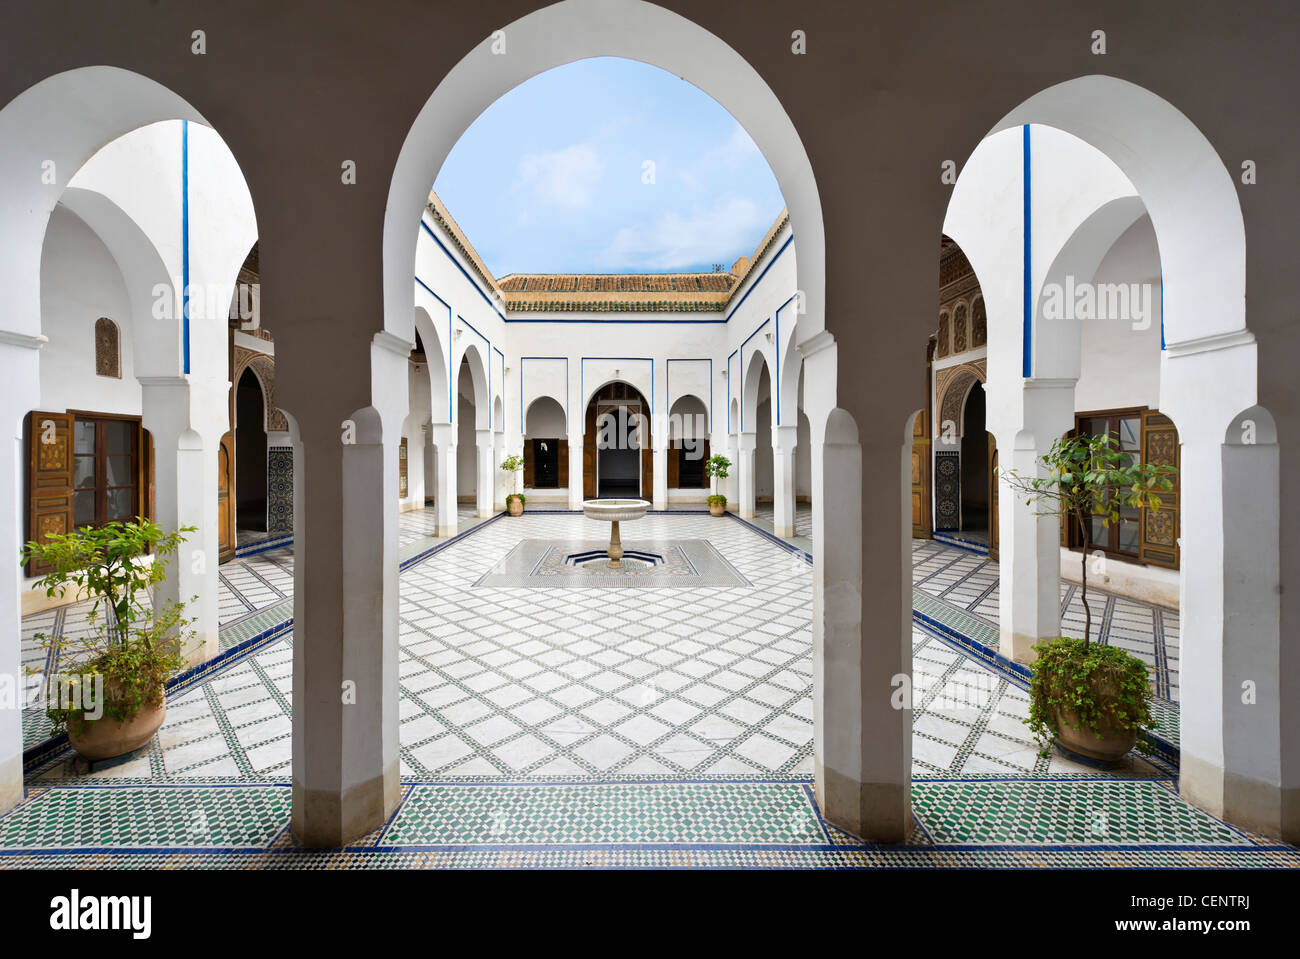 'La Petite Cour' courtyard in the Bahia Palace, Marrakech, Morocco, North Africa Stock Photo